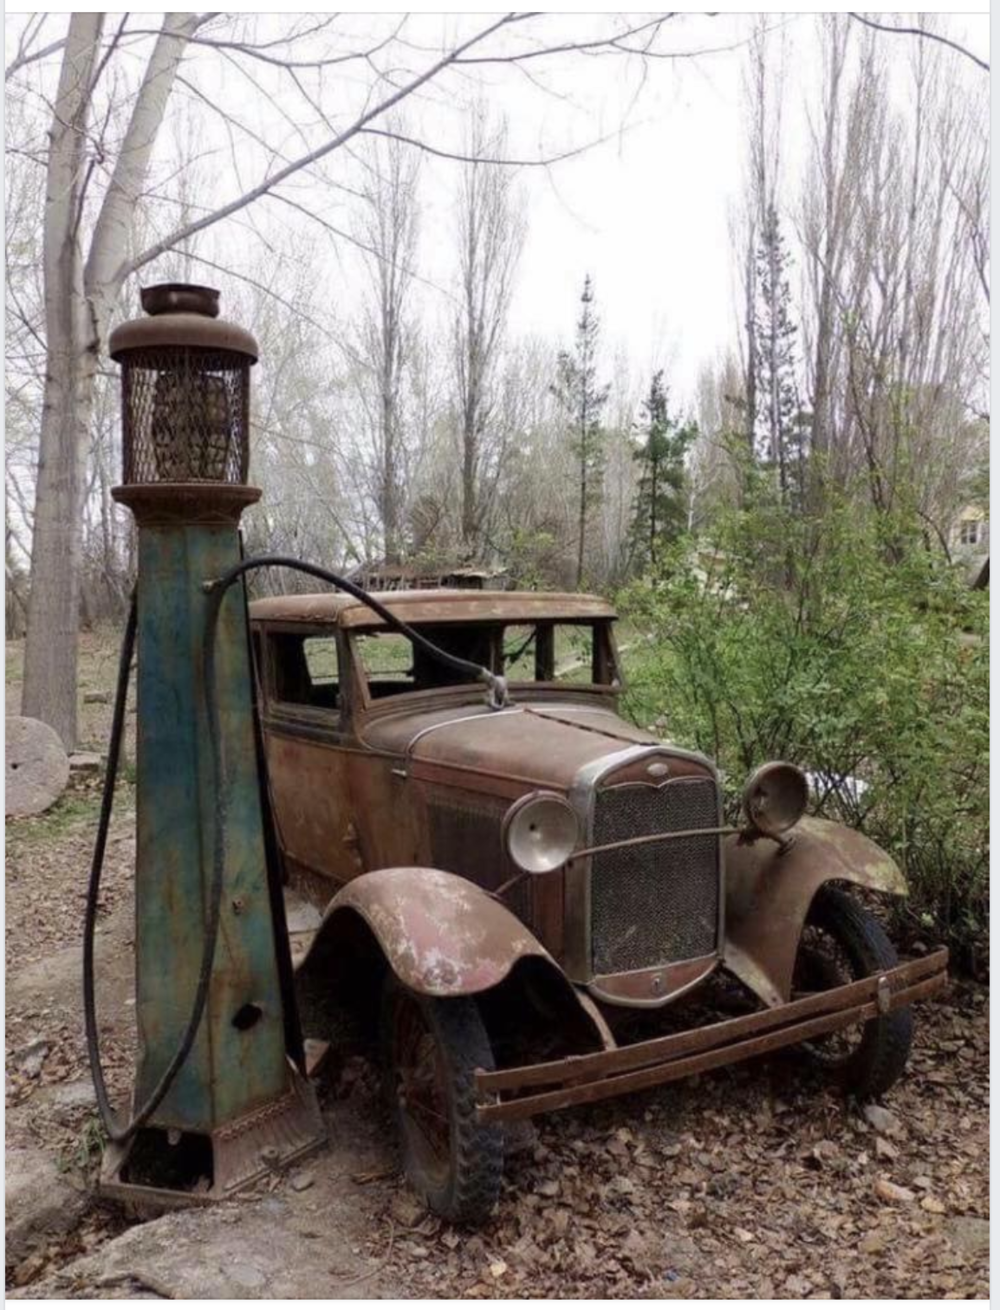 Rusty old gas pump and car_Garden n country FB page.png